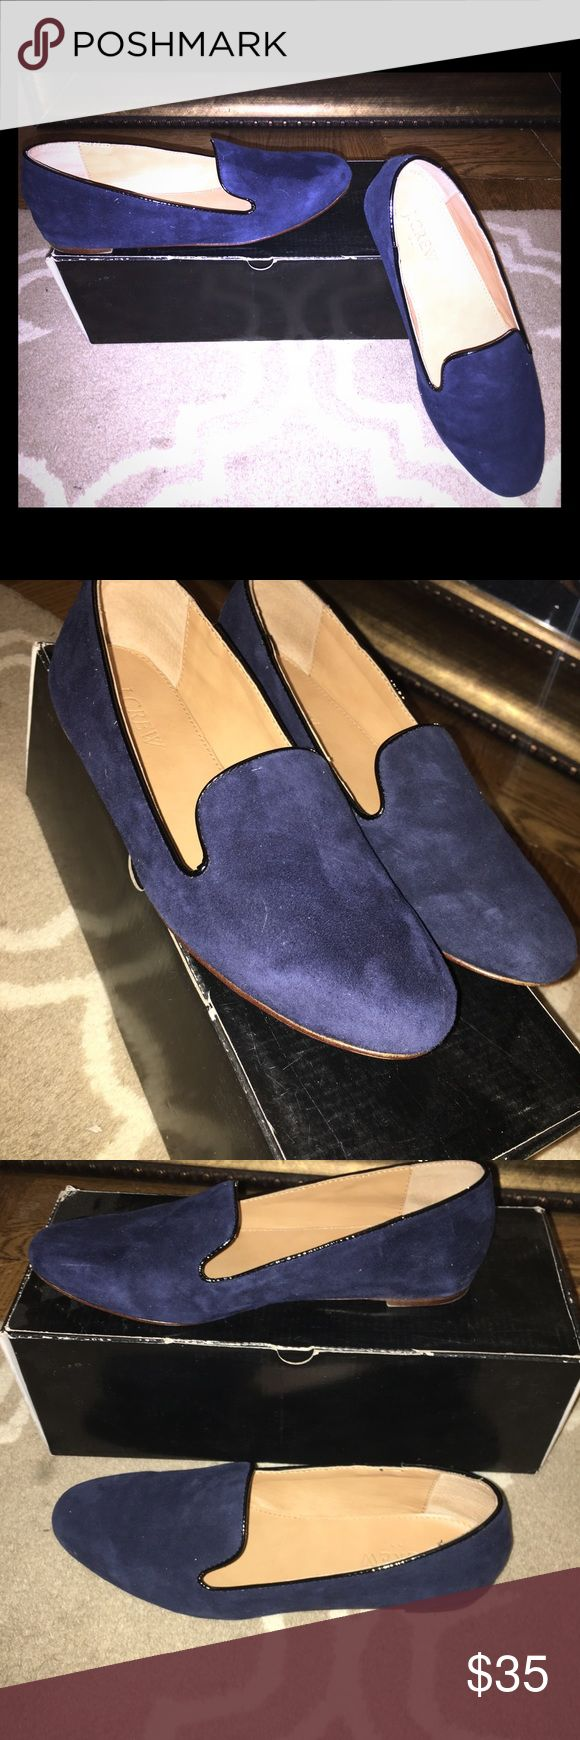 JCREW ADDIE SUEDE LOAFERS- color ROYAL NAVY Excellent condition suede loafer in rich royal navy color. Worn 2x max. Slight scratch on inner left shoe hardly noticeable. Fully suede protected. Inner leather as new. Comes in original jcrew box with details. J. Crew Shoes Flats & Loafers